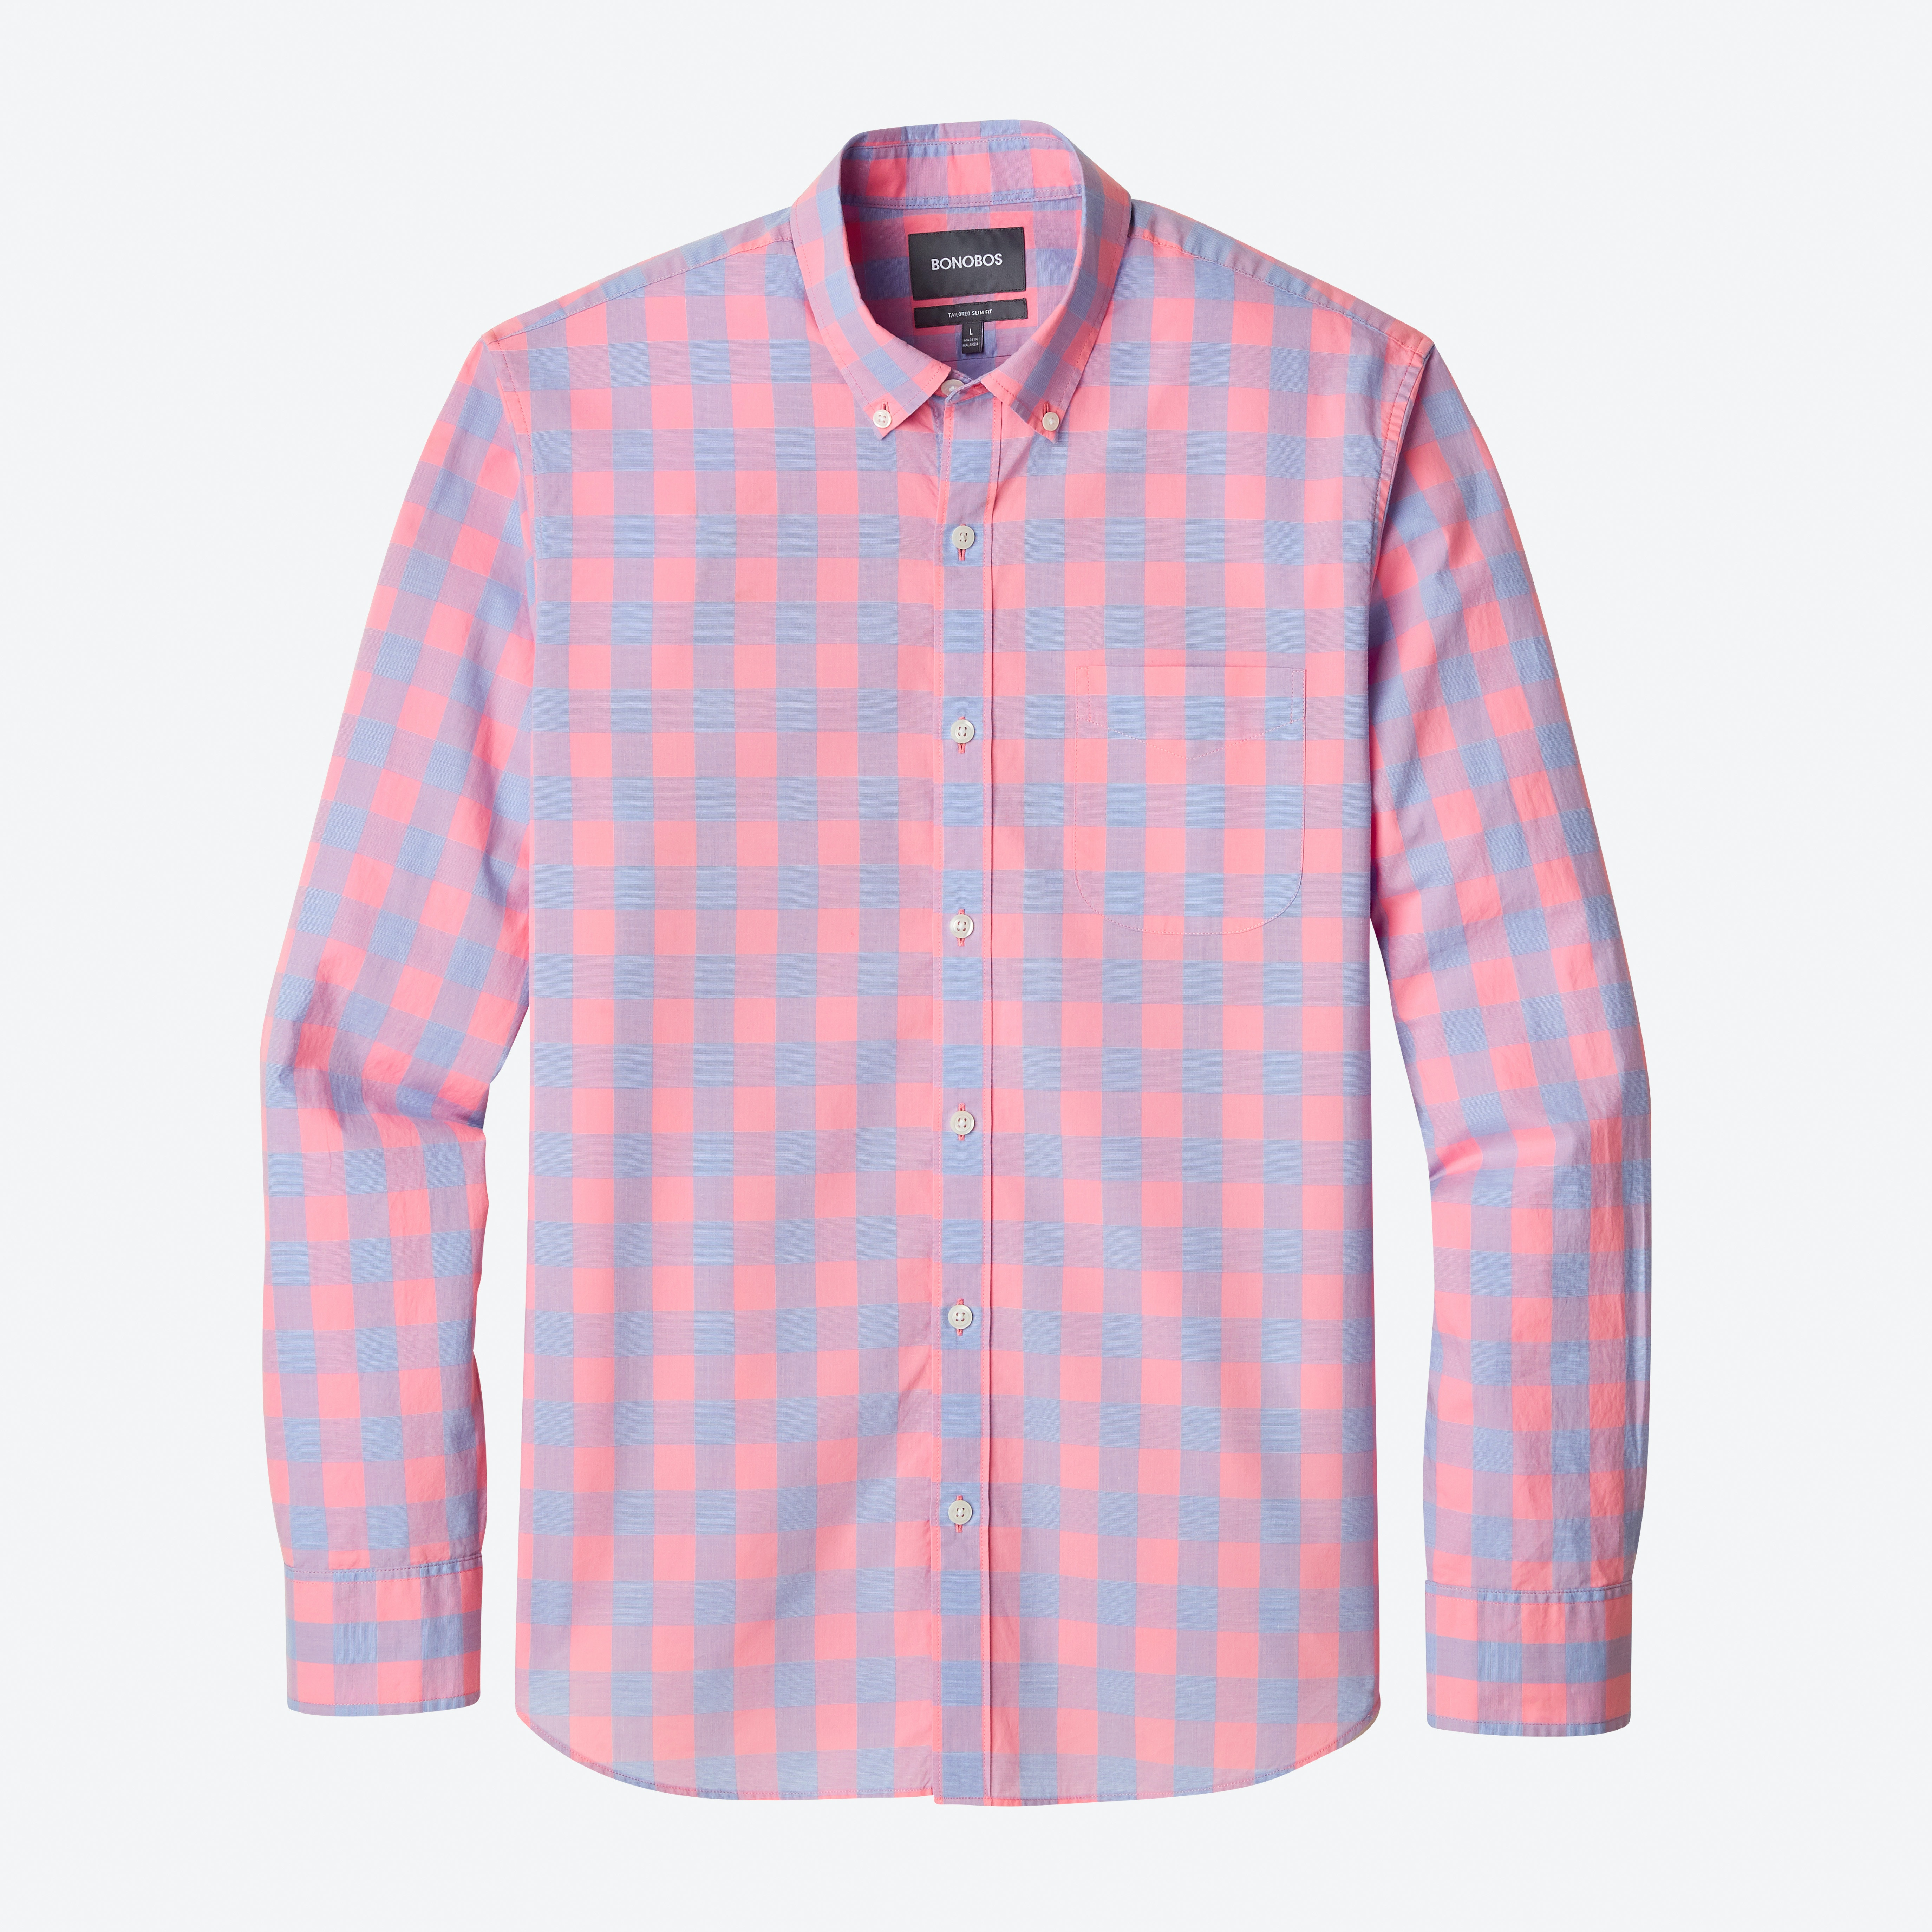 c00992cb6d97 All about Summer Weight Shirt Bonobos - www.kidskunst.info